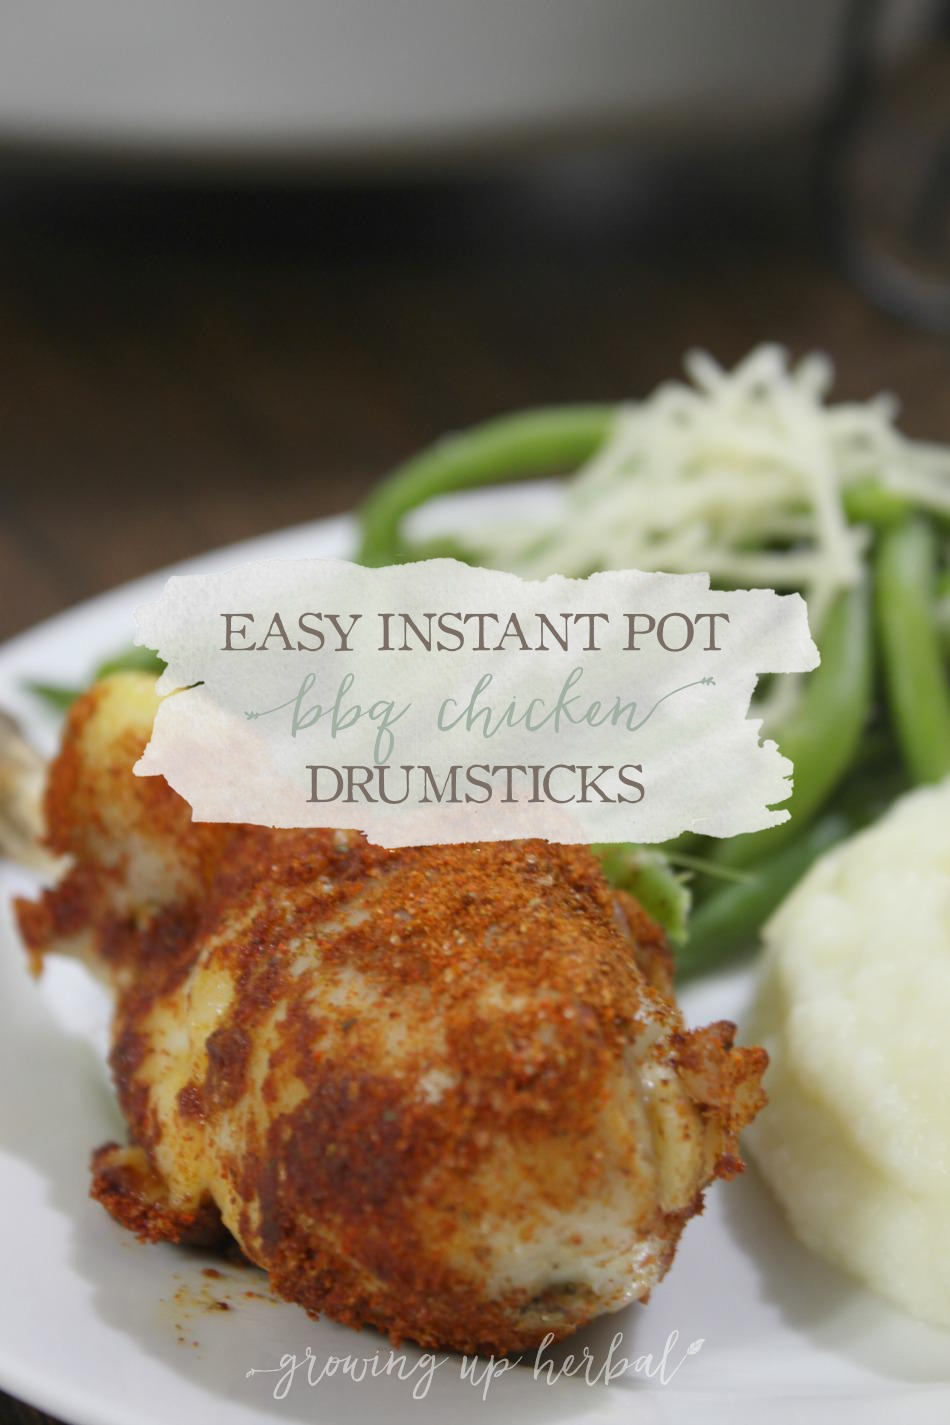 Easy Instant Pot BBQ Chicken Drumsticks | Growing Up Herbal | Enjoy this quick and healthy Instant Pot recipe that the whole family is sure to love... even picky kids!